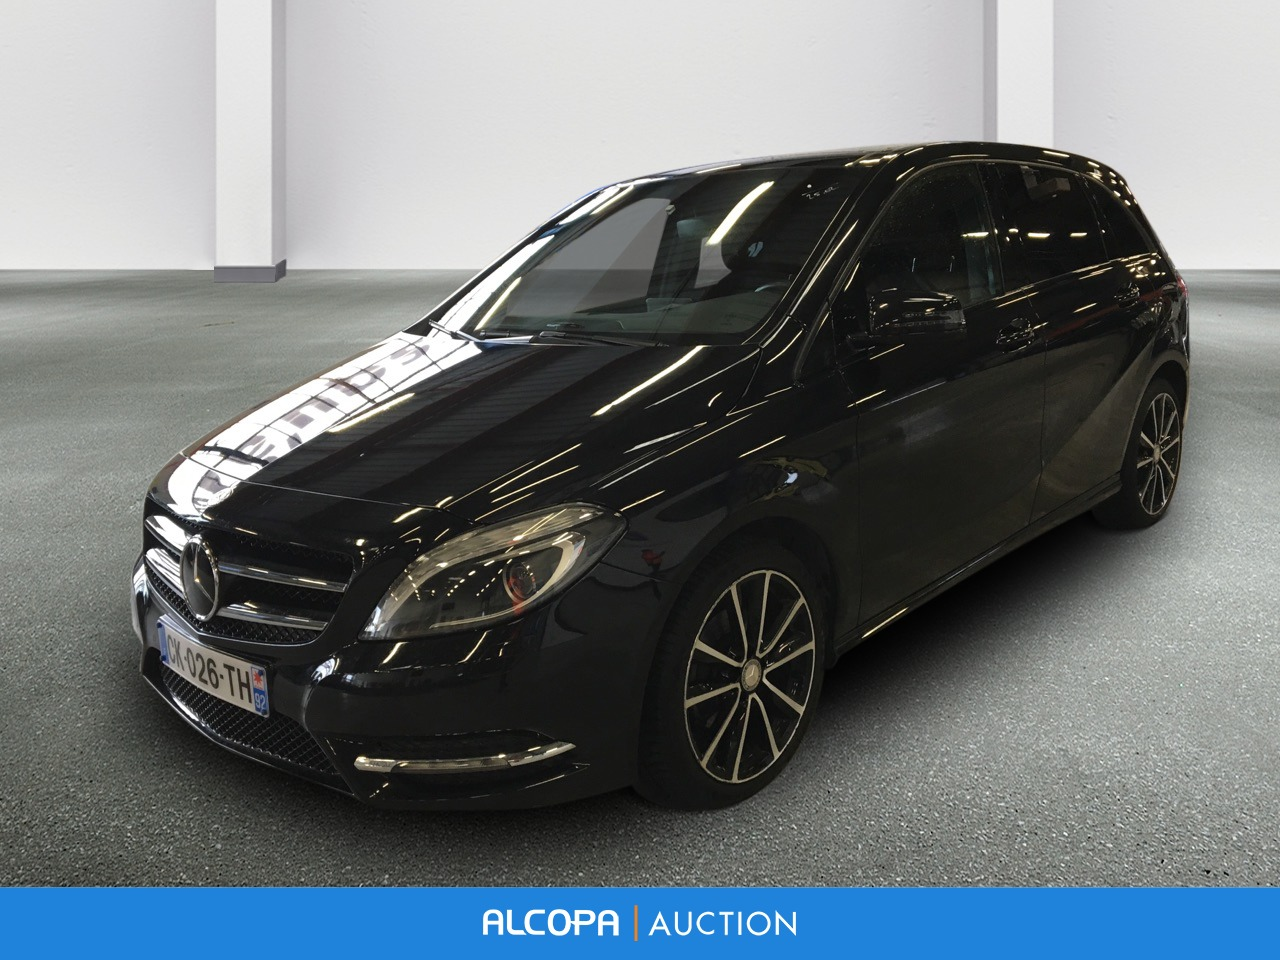 mercedes benz classe b classe b 200 cdi blueefficiency fascination alcopa auction. Black Bedroom Furniture Sets. Home Design Ideas